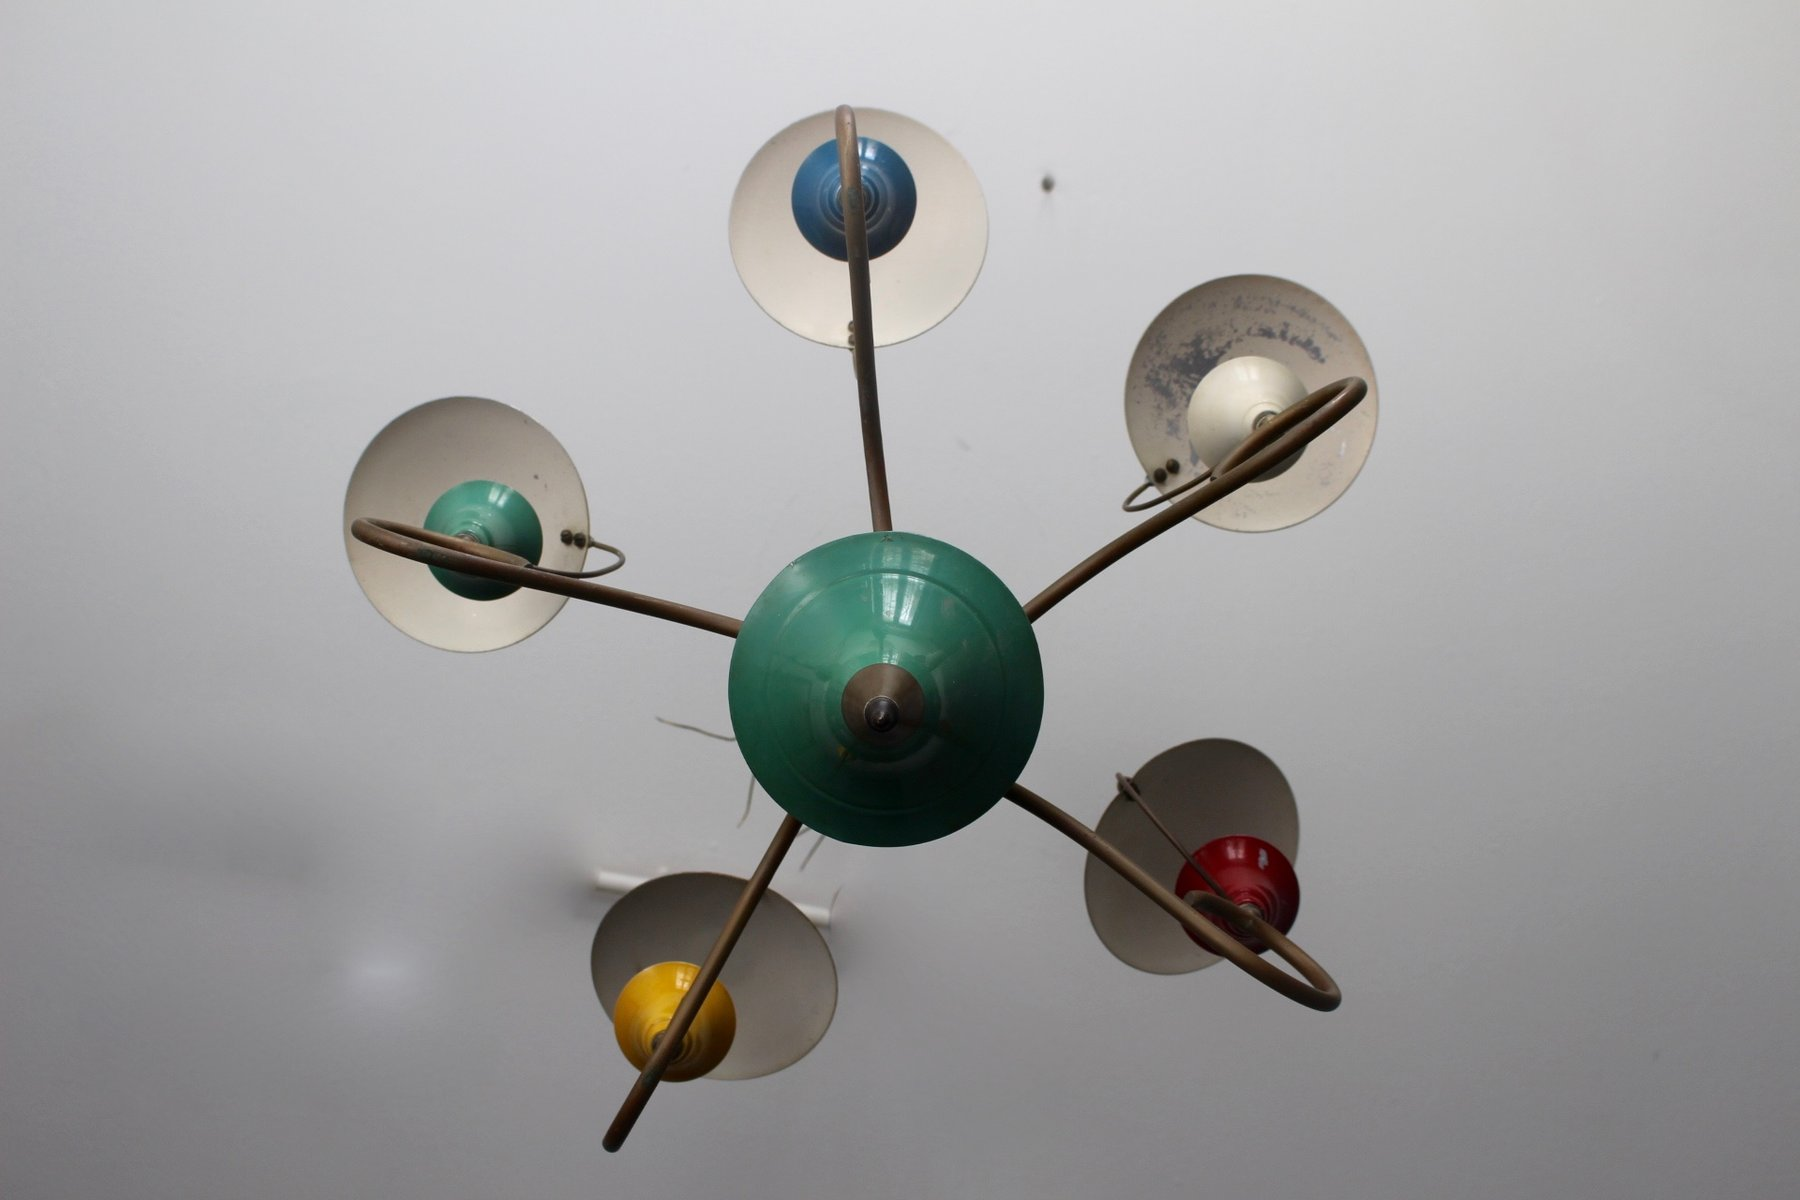 Mid century colorful chandelier with reflectors 1950s for sale at mid century colorful chandelier with reflectors 1950s aloadofball Choice Image